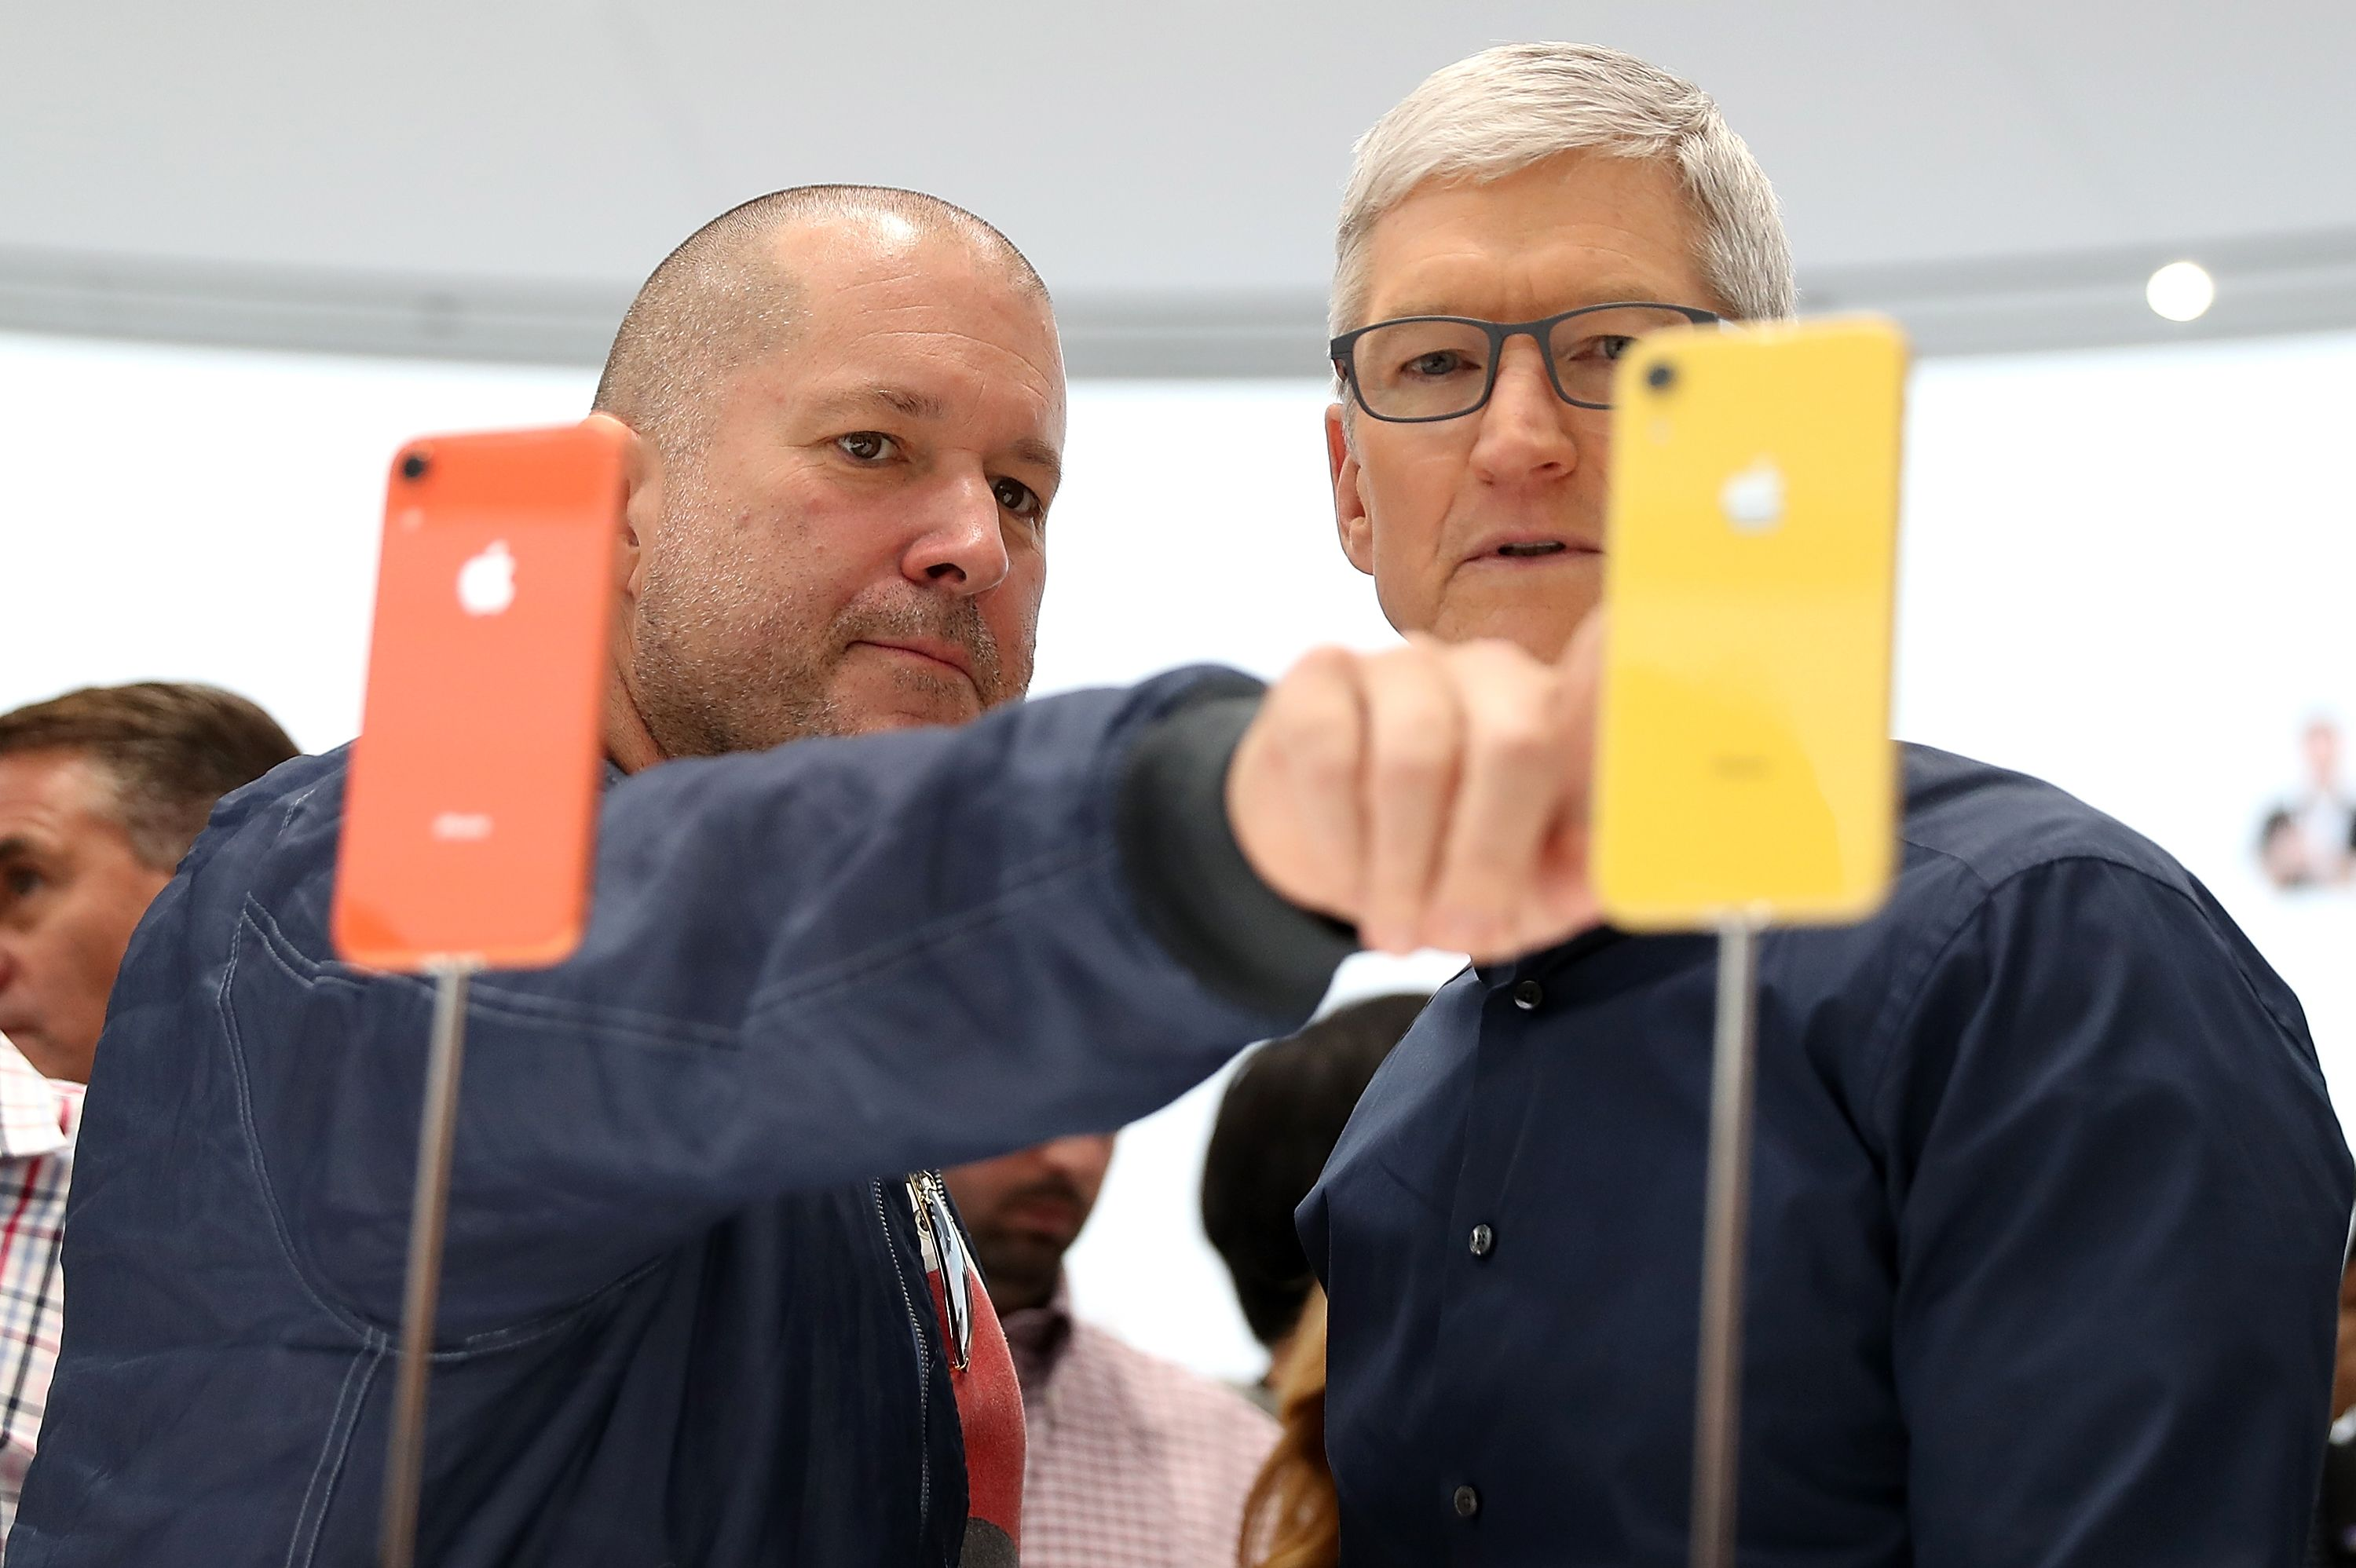 Foxconn can build iPhones for U.S. outside China